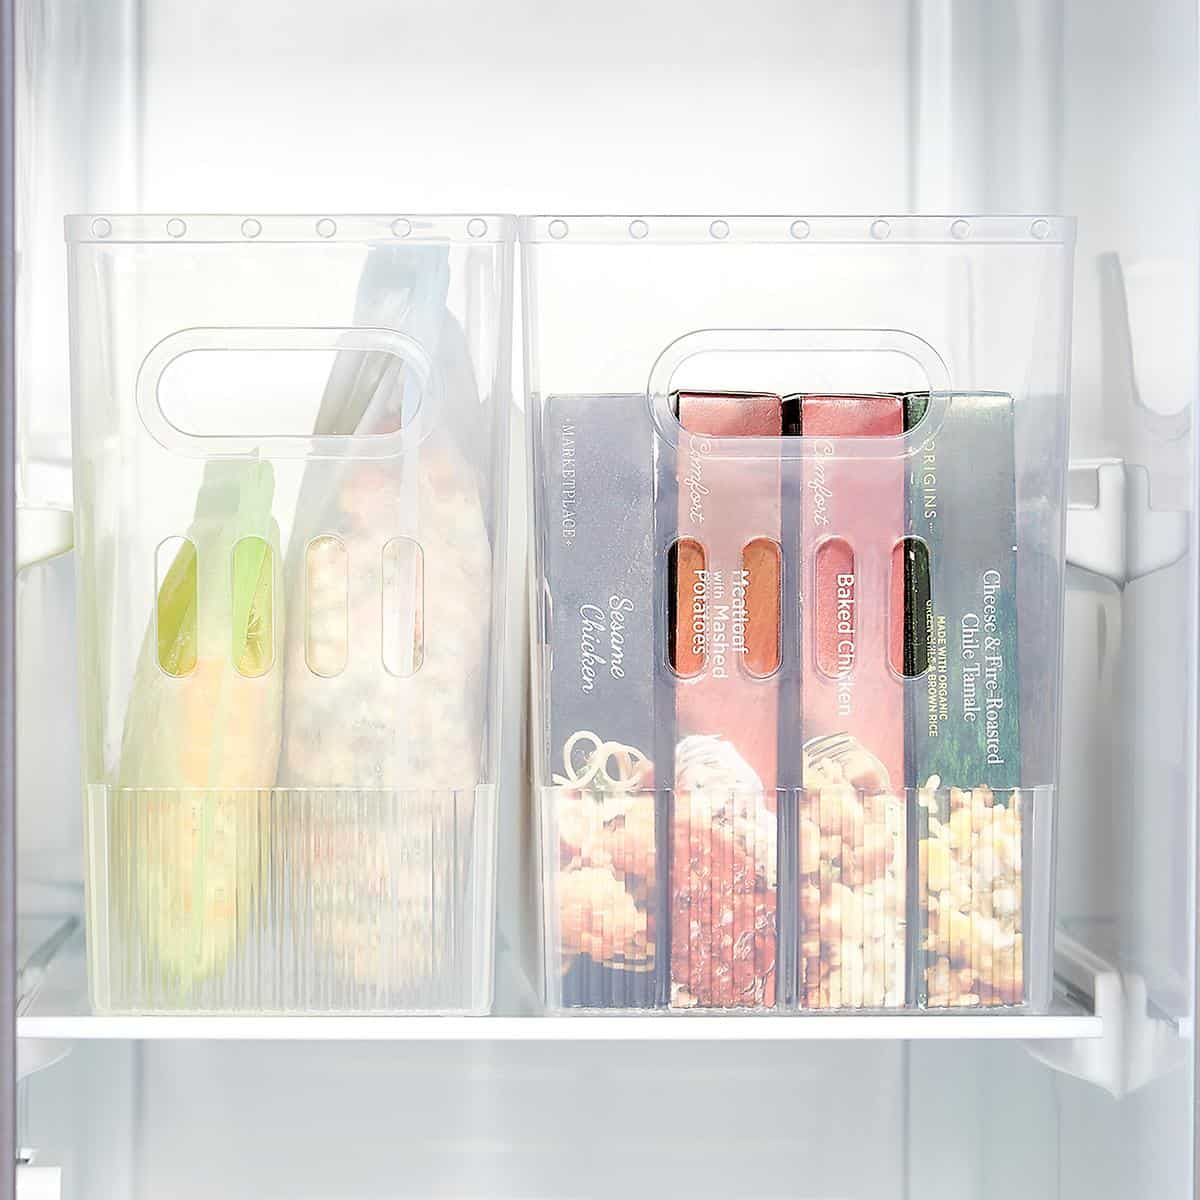 Best bins for your deep freezer drawer organization - multi-purpose bins from The Container Store